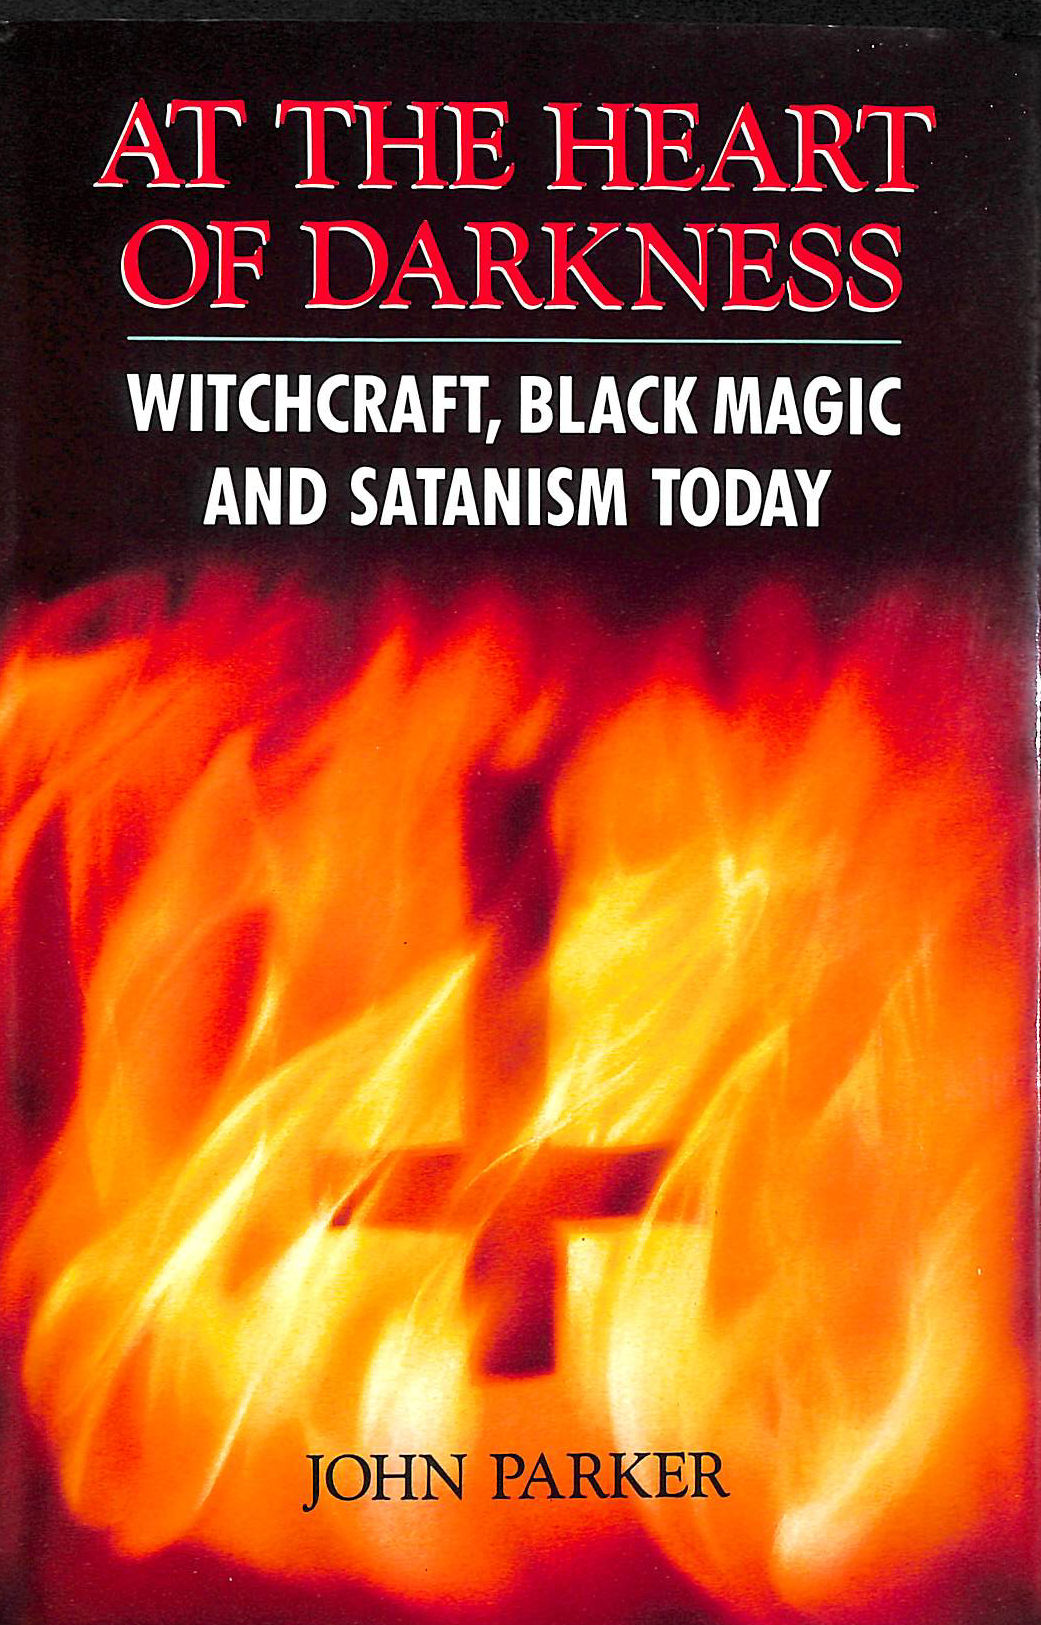 Image for At The Heart Of Darkness: Witchcraft, Black Magic And Devil Worship In Britain Today: Witchcraft, Black Magic and Satanism in Britain Today